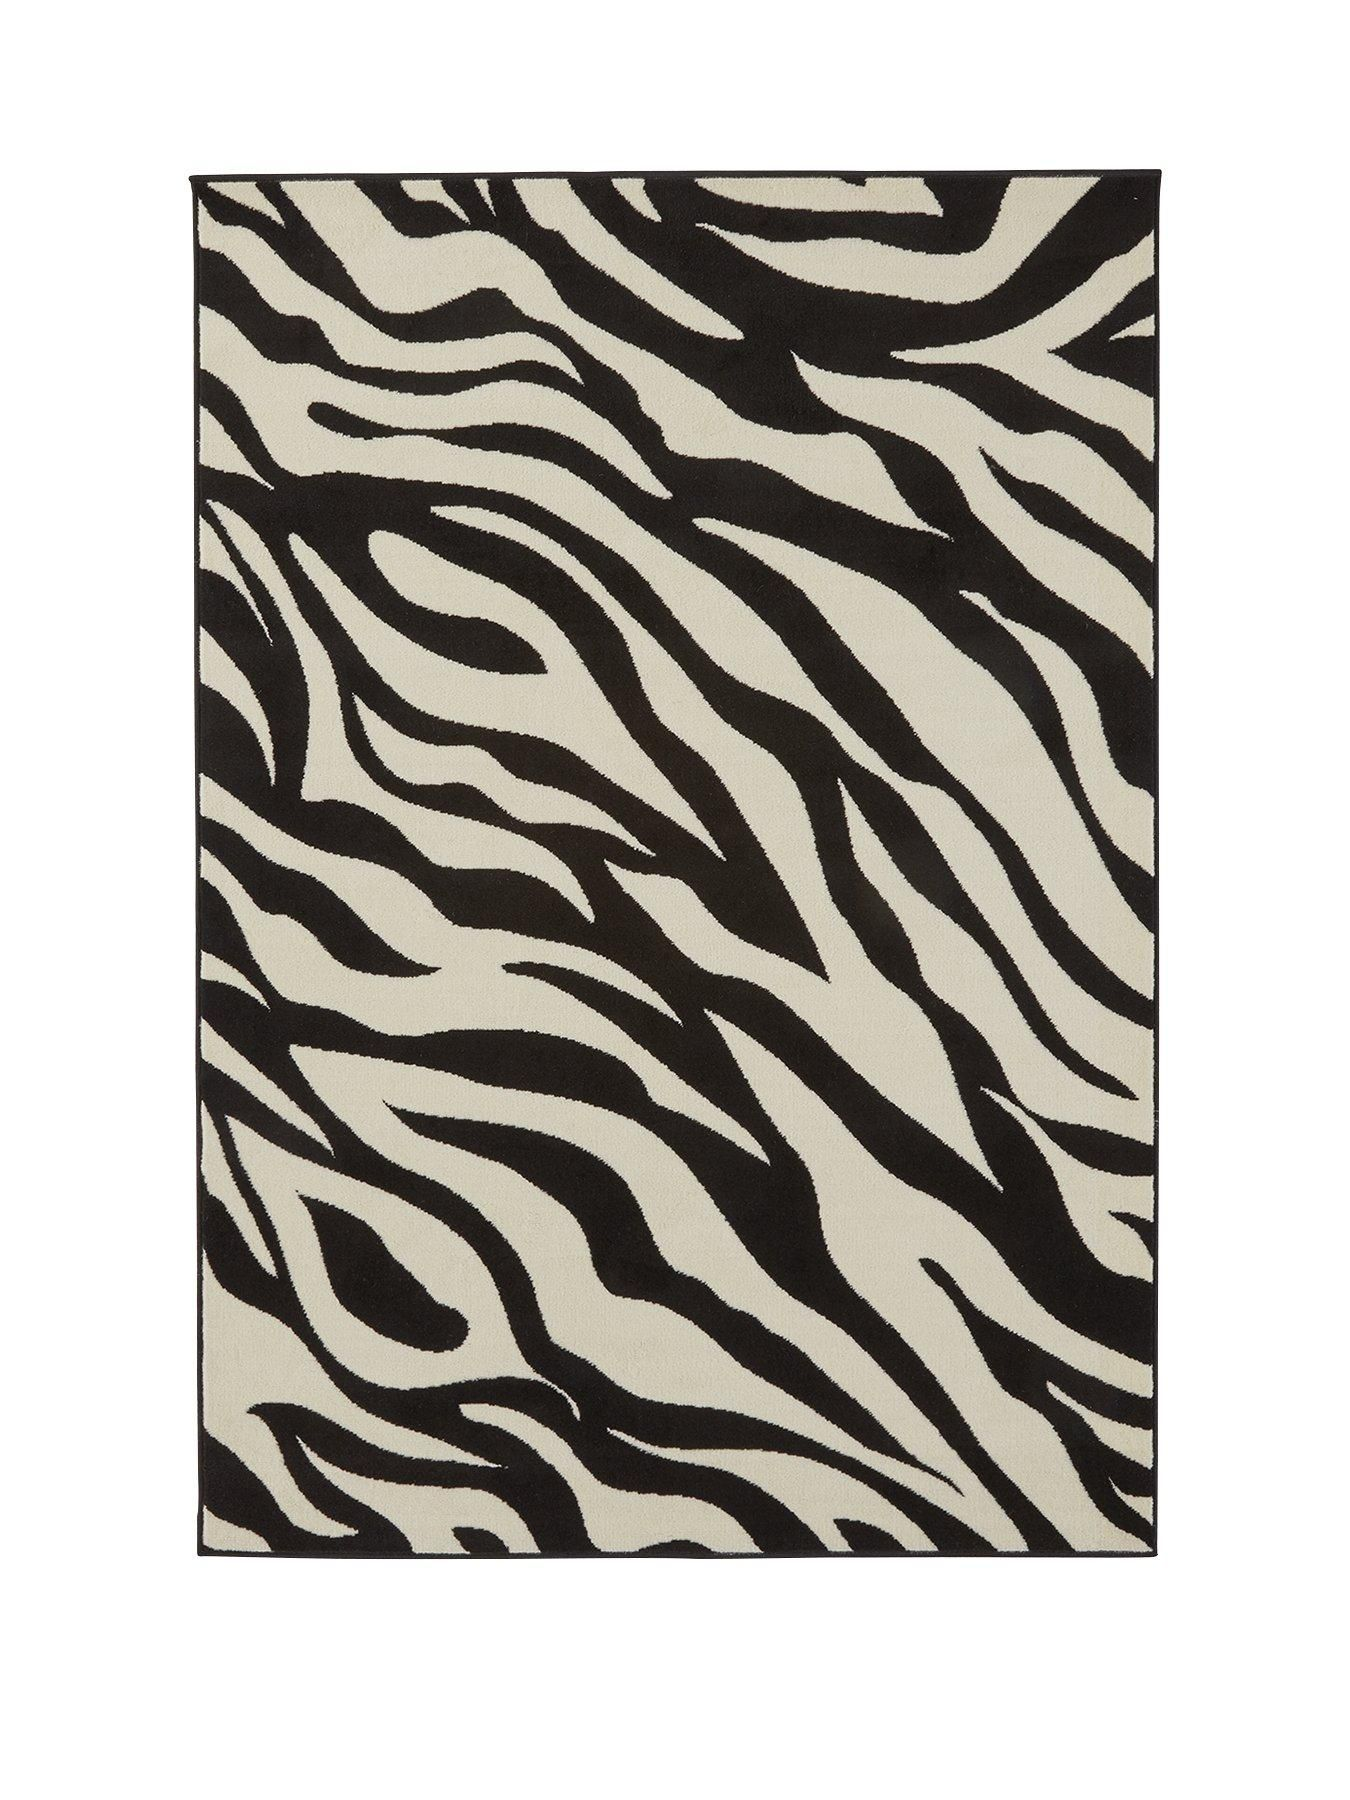 Zebra Print Rug With Images